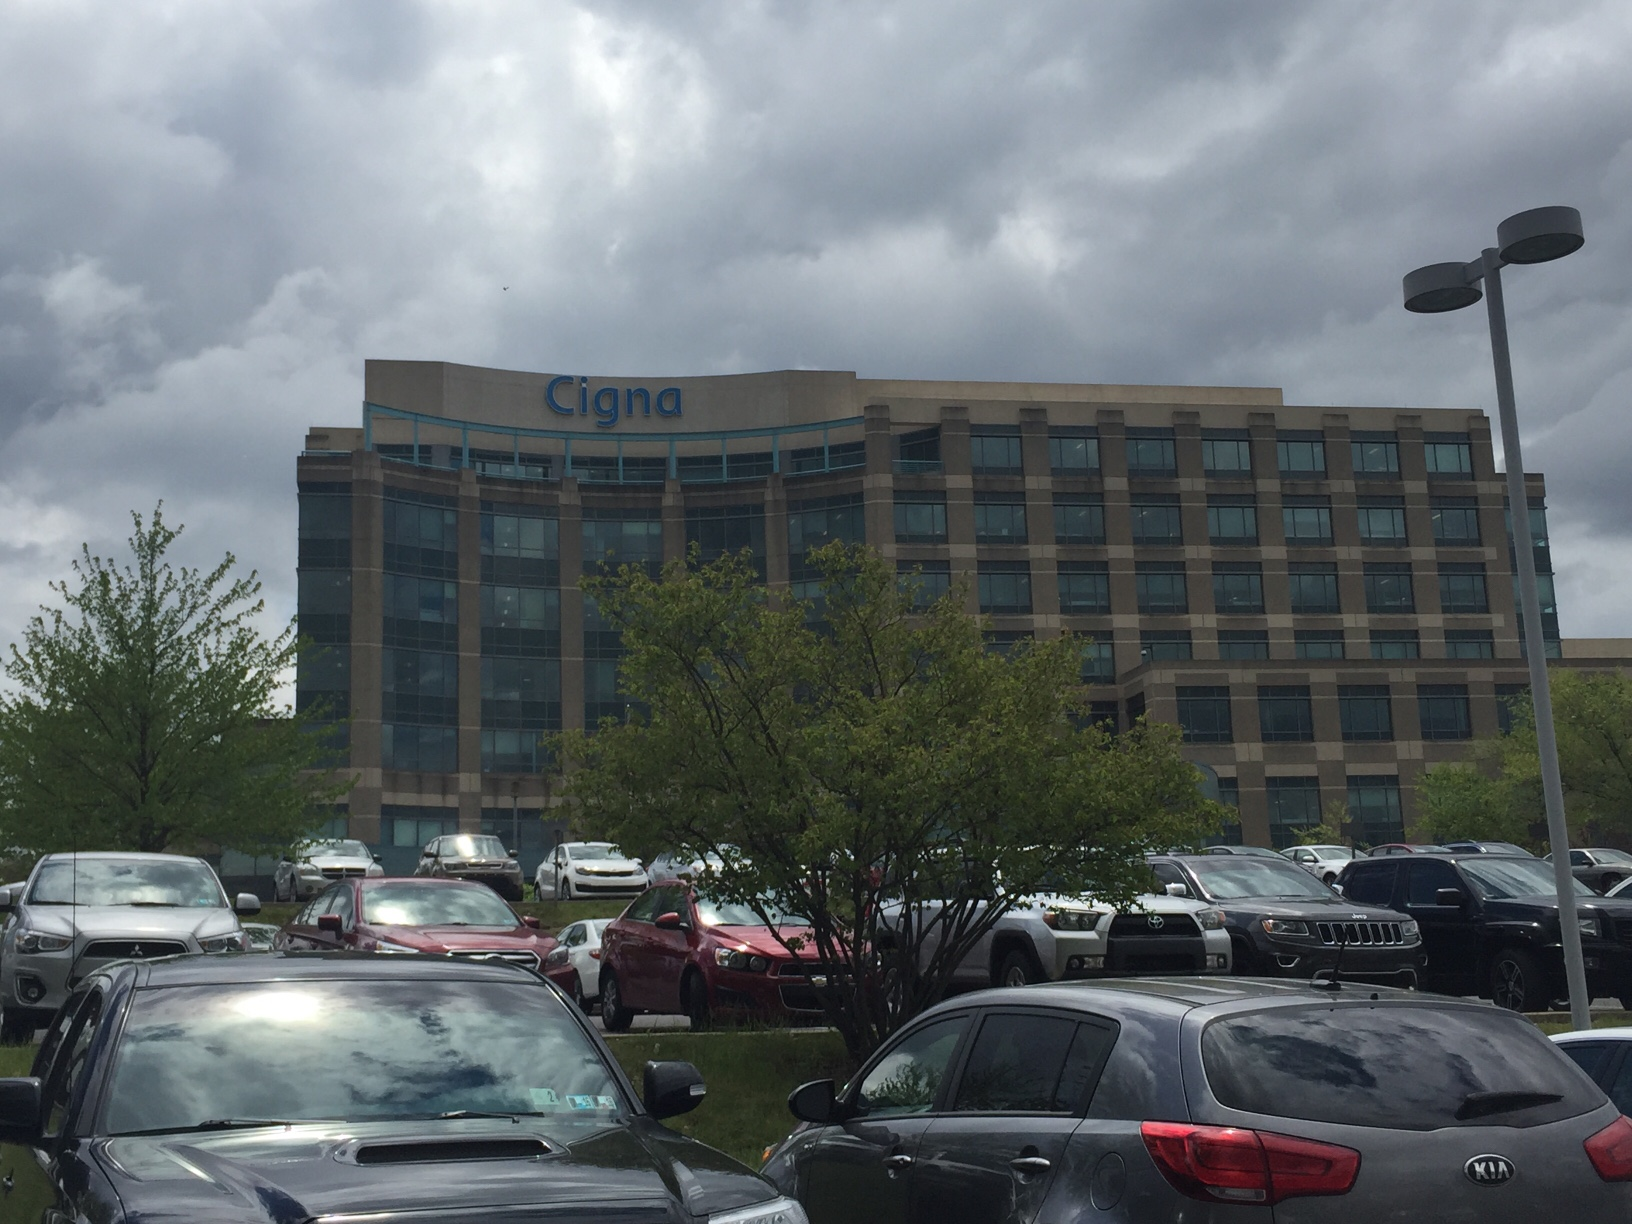 Cigna office in Pittsburgh, Pennsylvania.